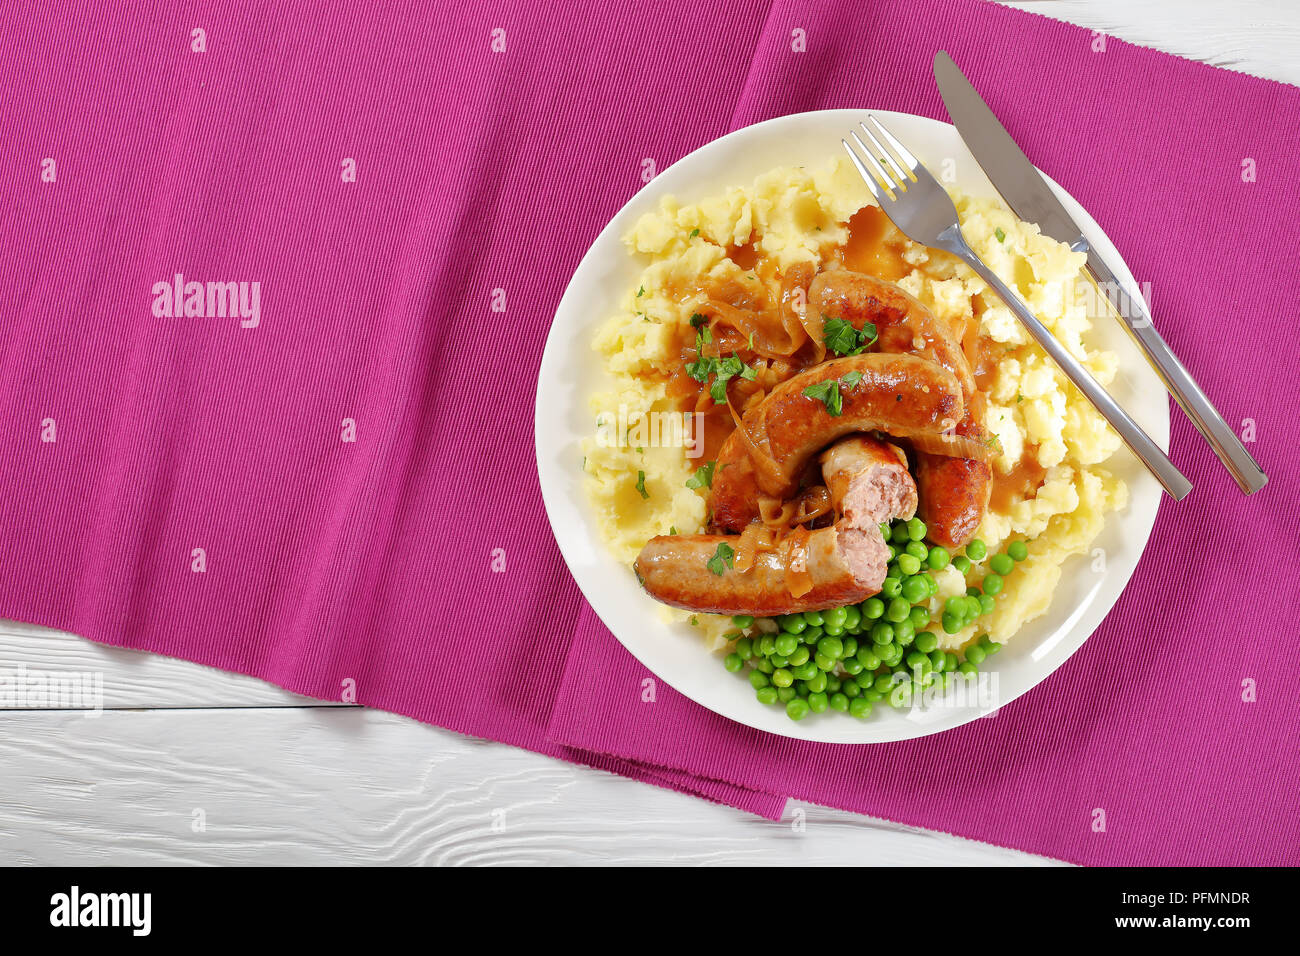 delicious Bangers and Mash -  juicy fried sausages drowning in loads of gravy, with creamy mashed potatoes and the obligatory side of peas, classic re Stock Photo